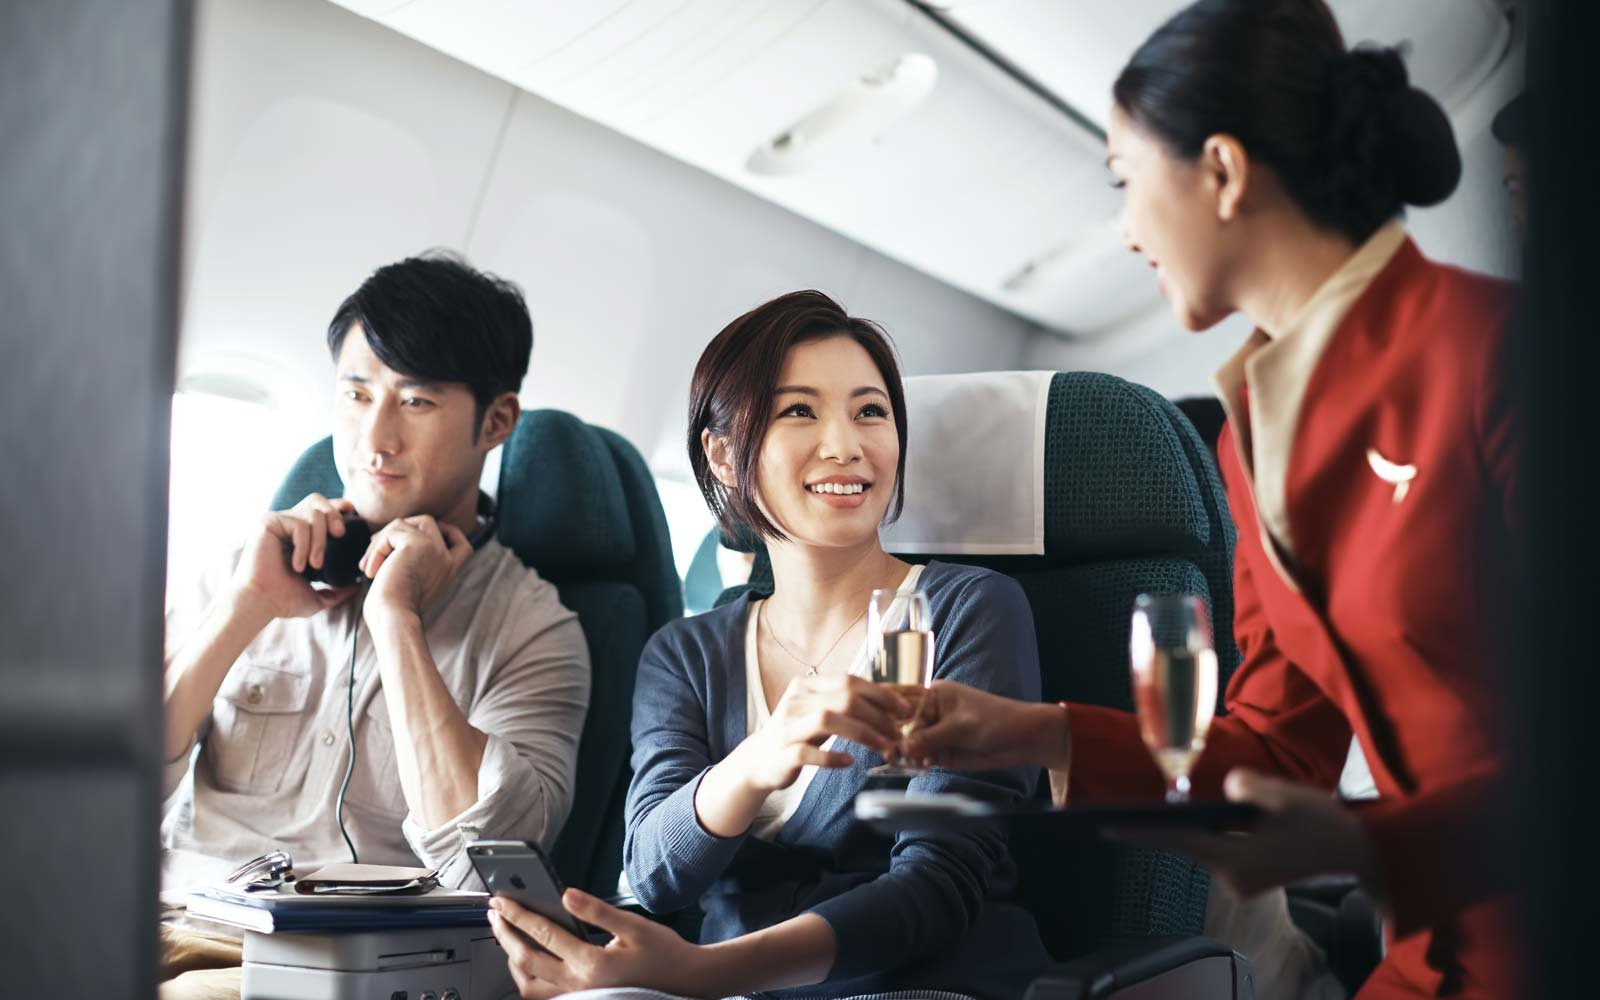 Cathay Pacific in-flight service